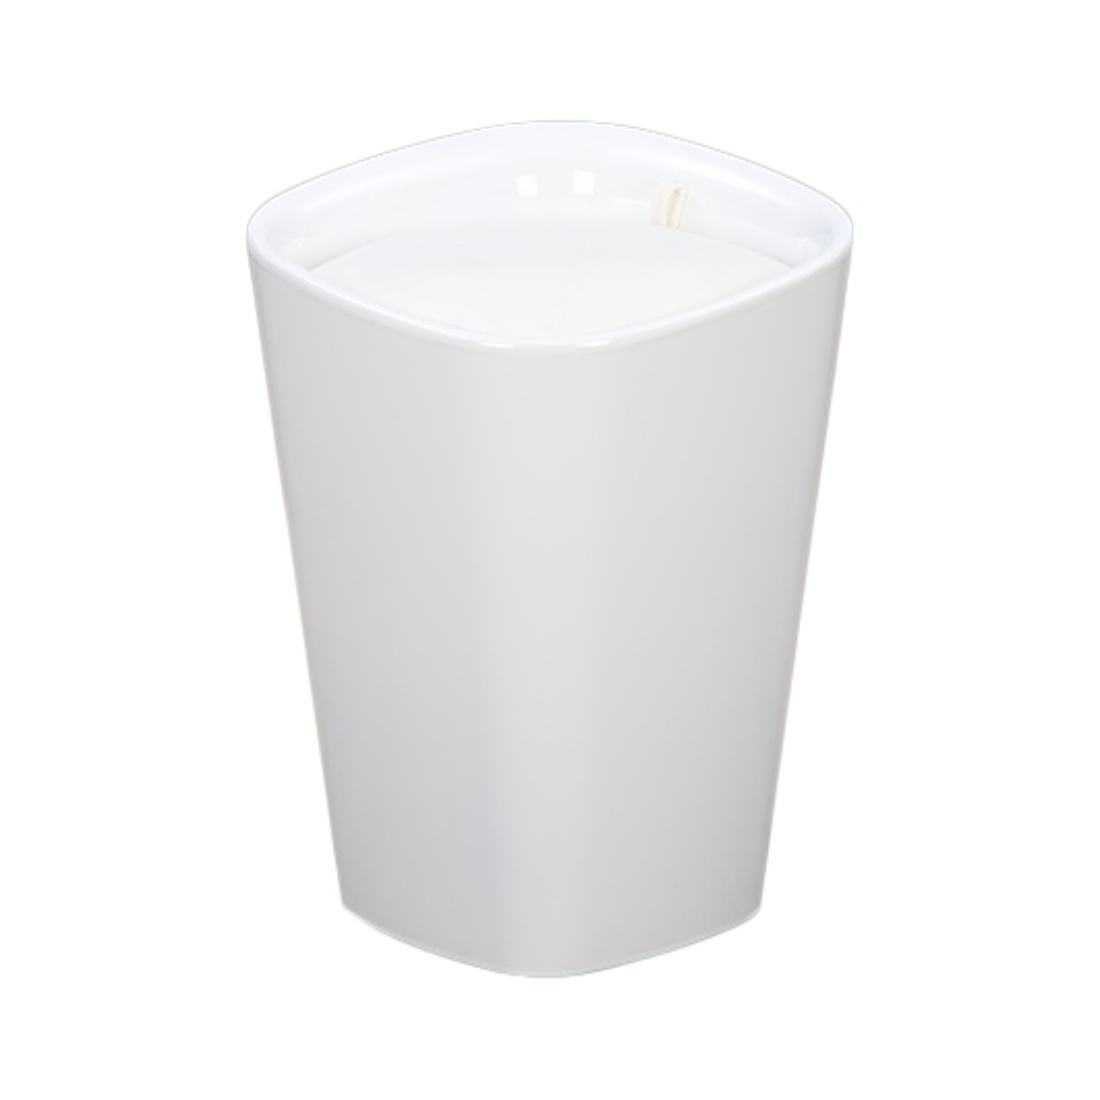 Ludo ABS Stool in White Colour by HomeTown